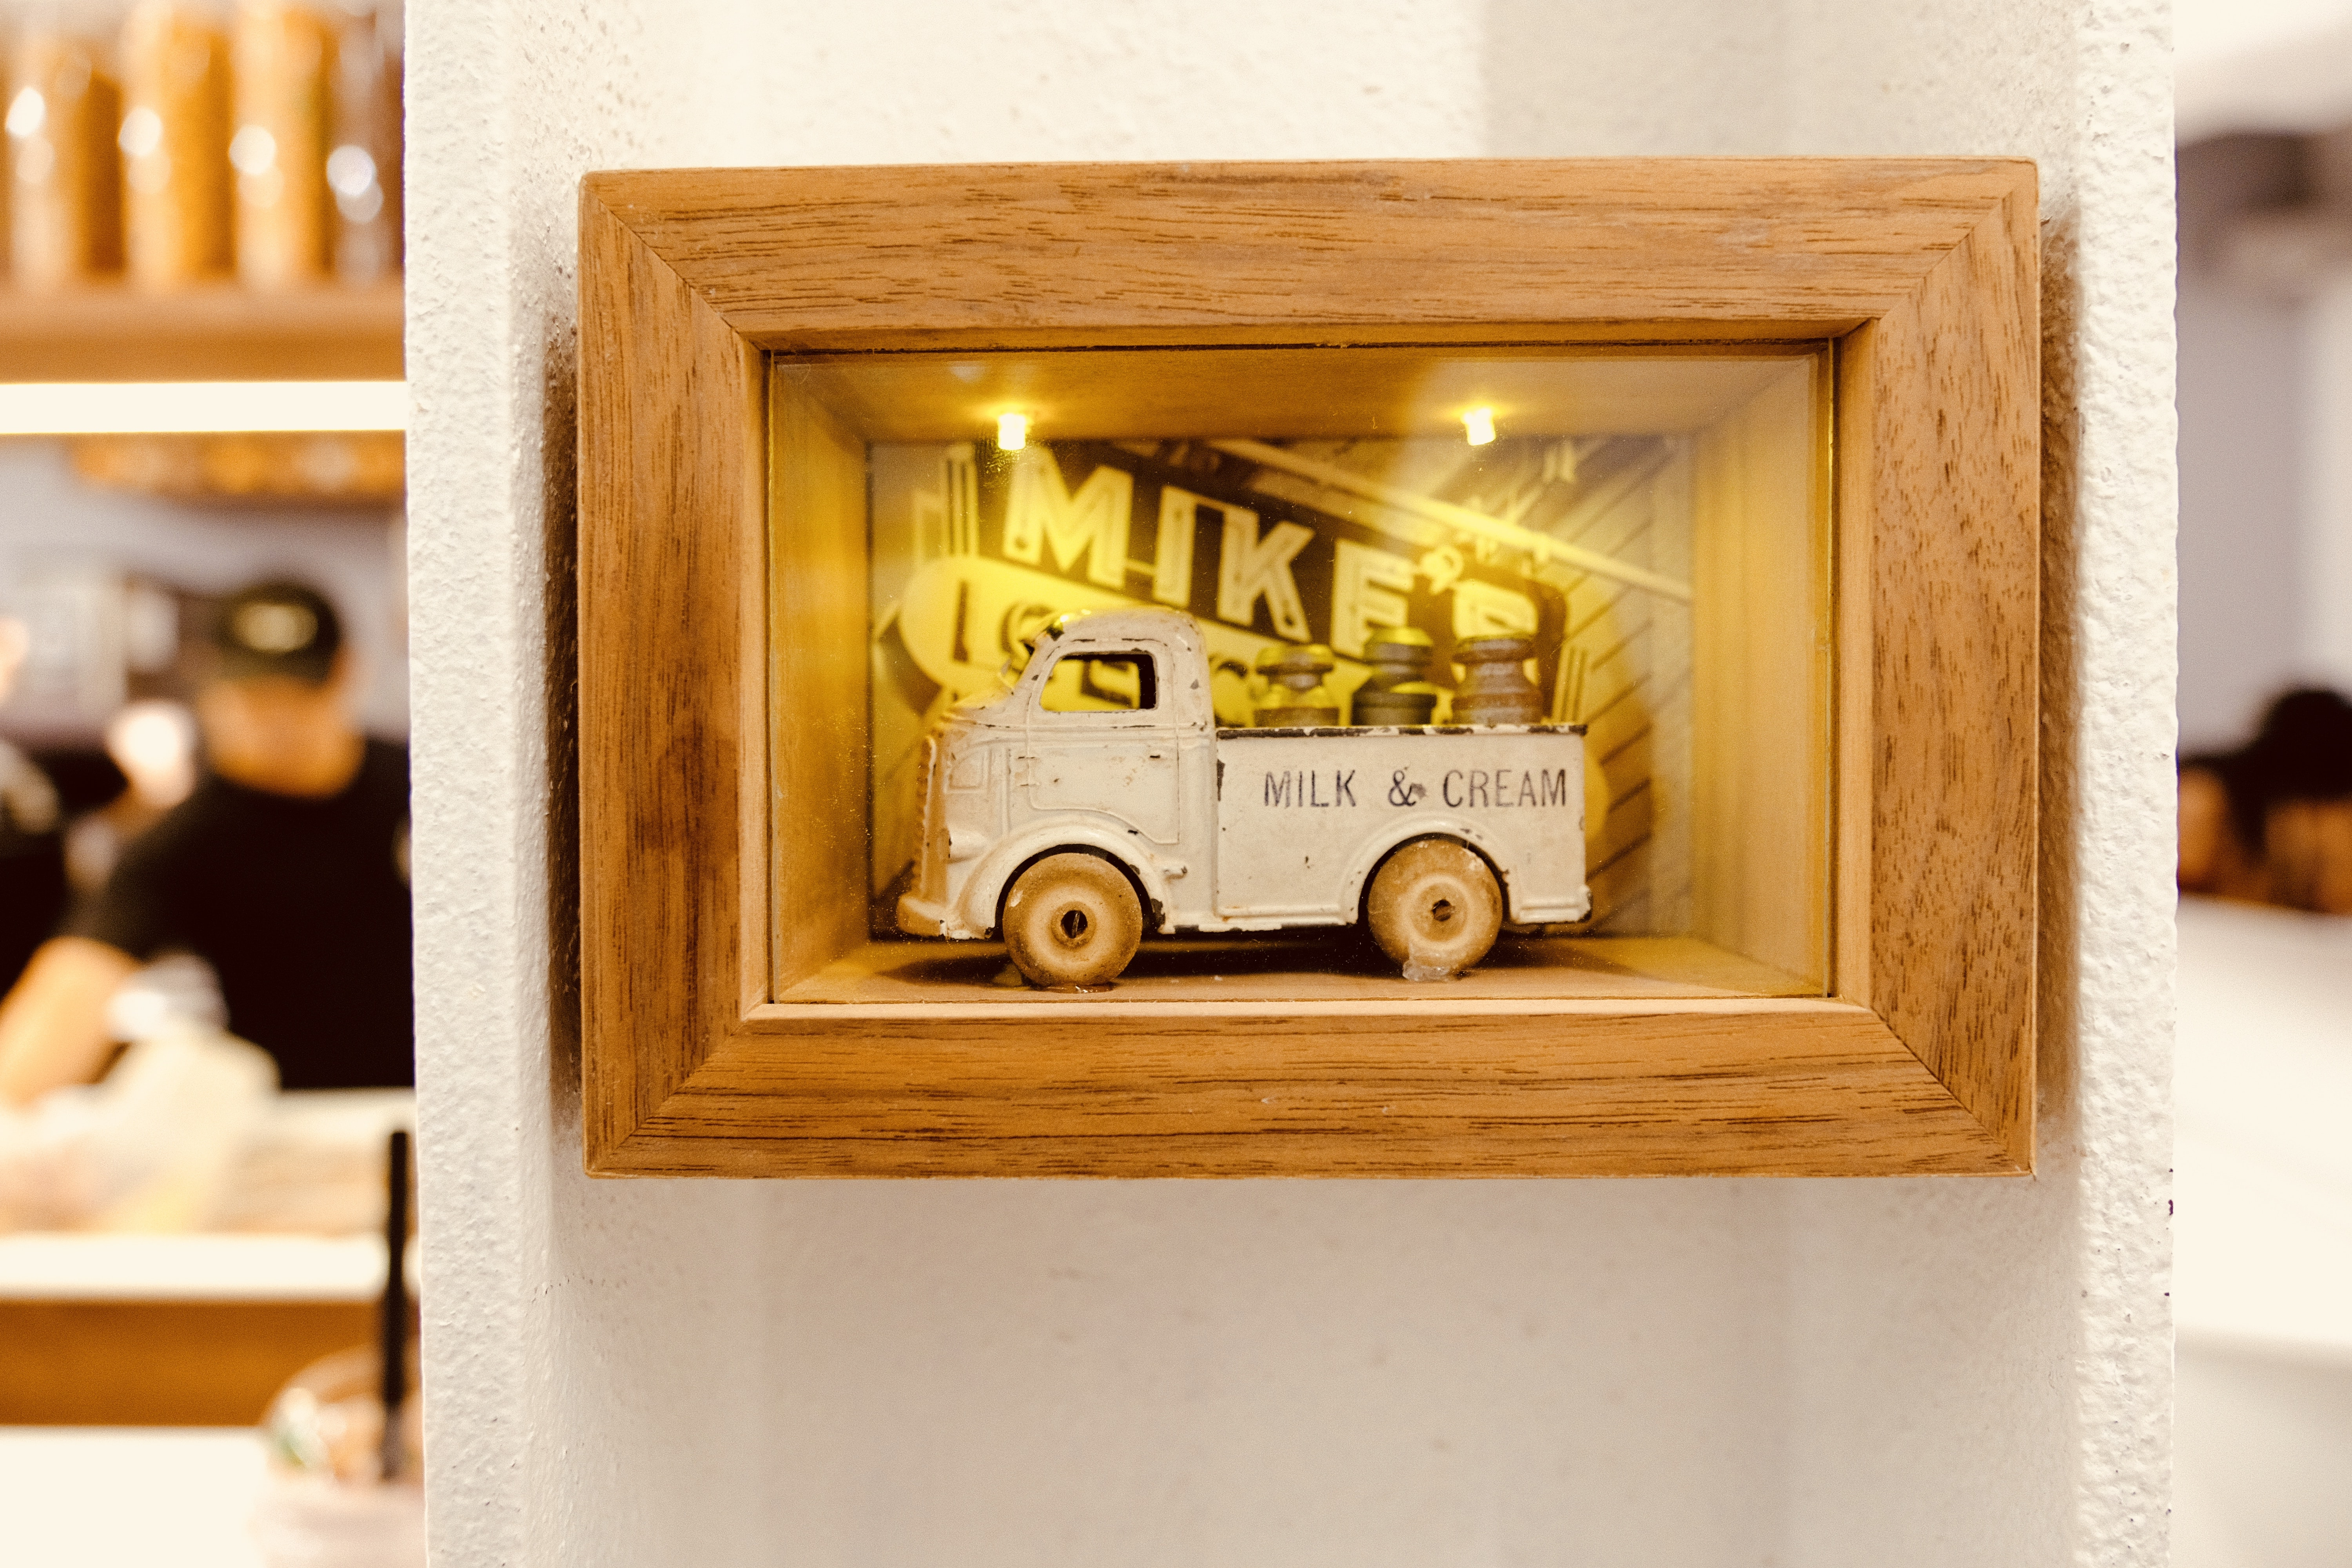 gray truck toy with brown wooden frame on wall